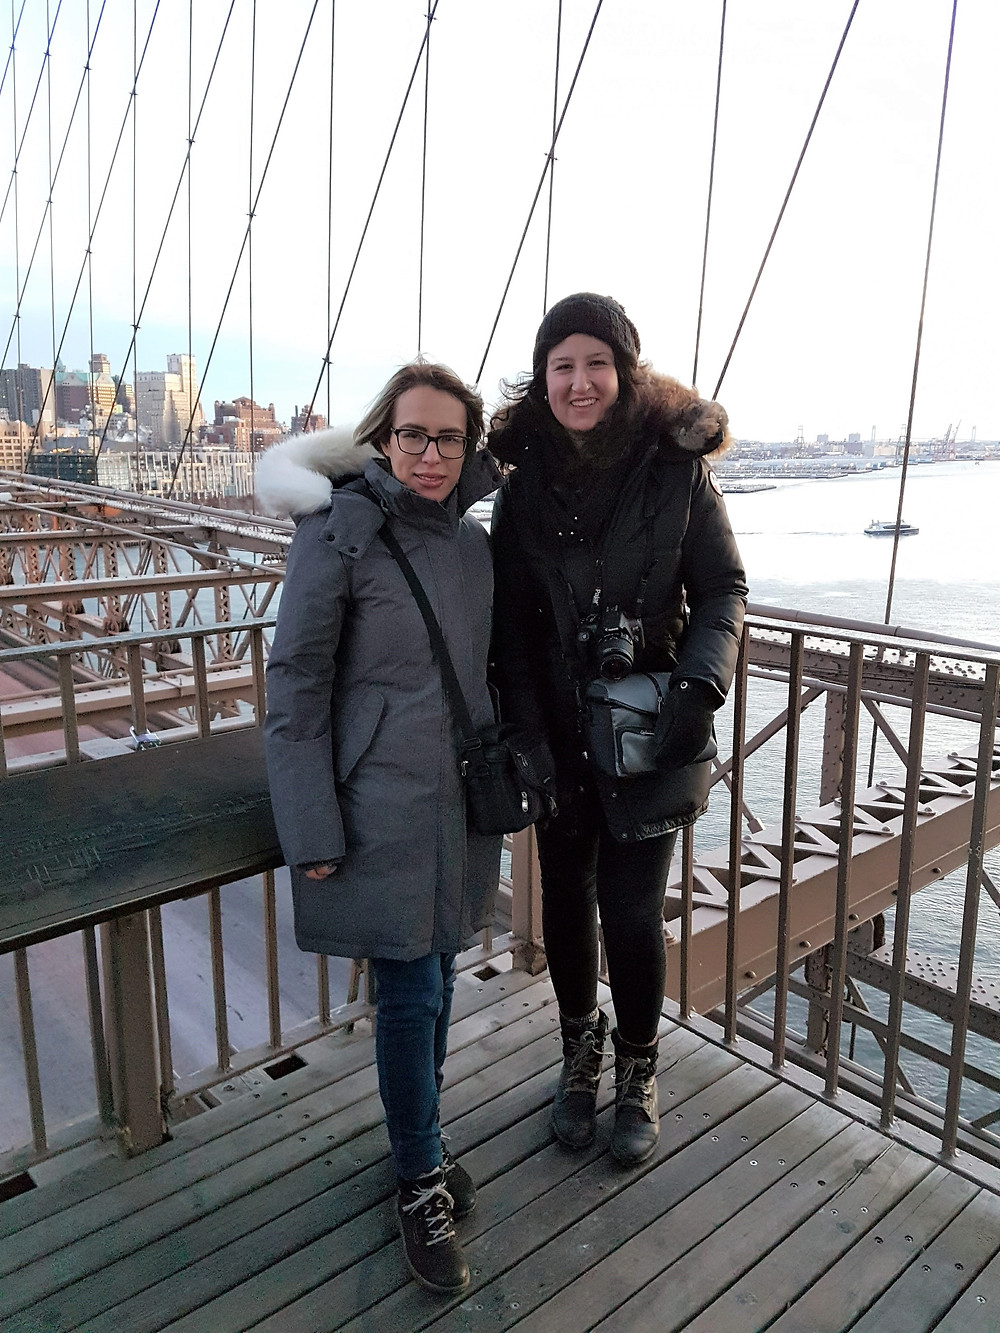 Brooklyn Bridge: Marian and I